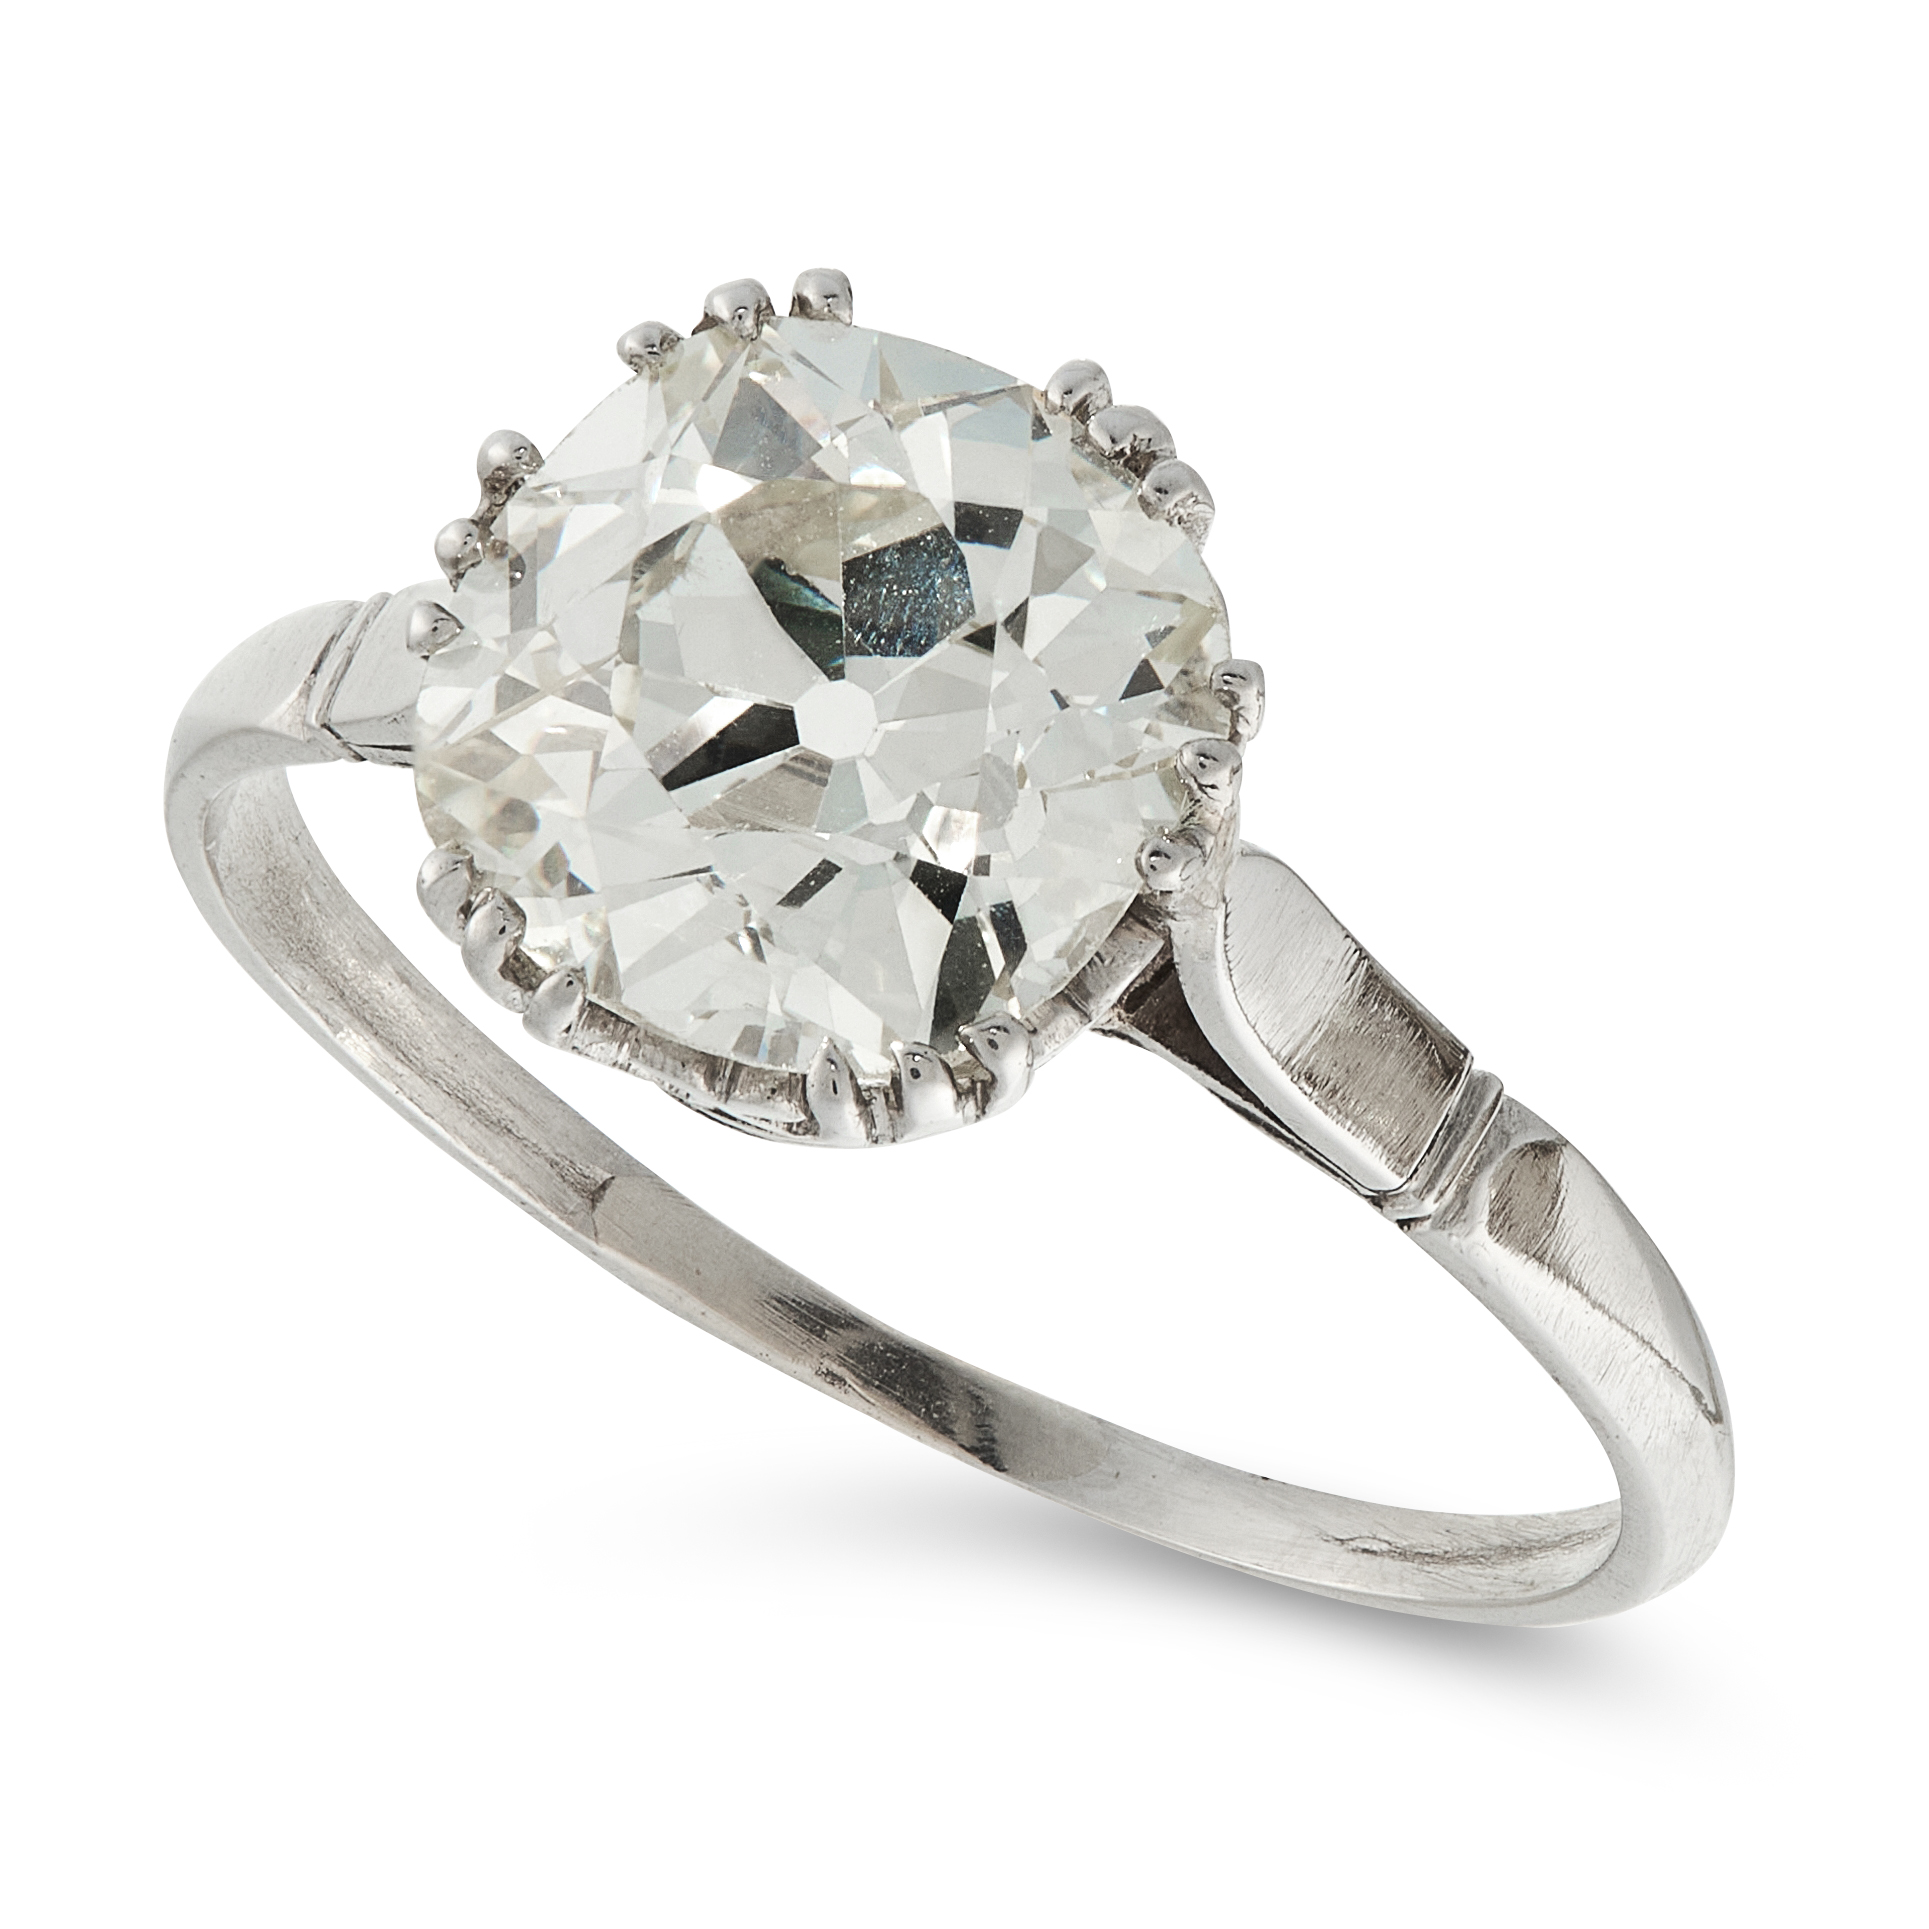 A 2.74 CARAT SOLITAIRE DIAMOND RING set with an old European cut diamond of 2.74 carats, unmarked,